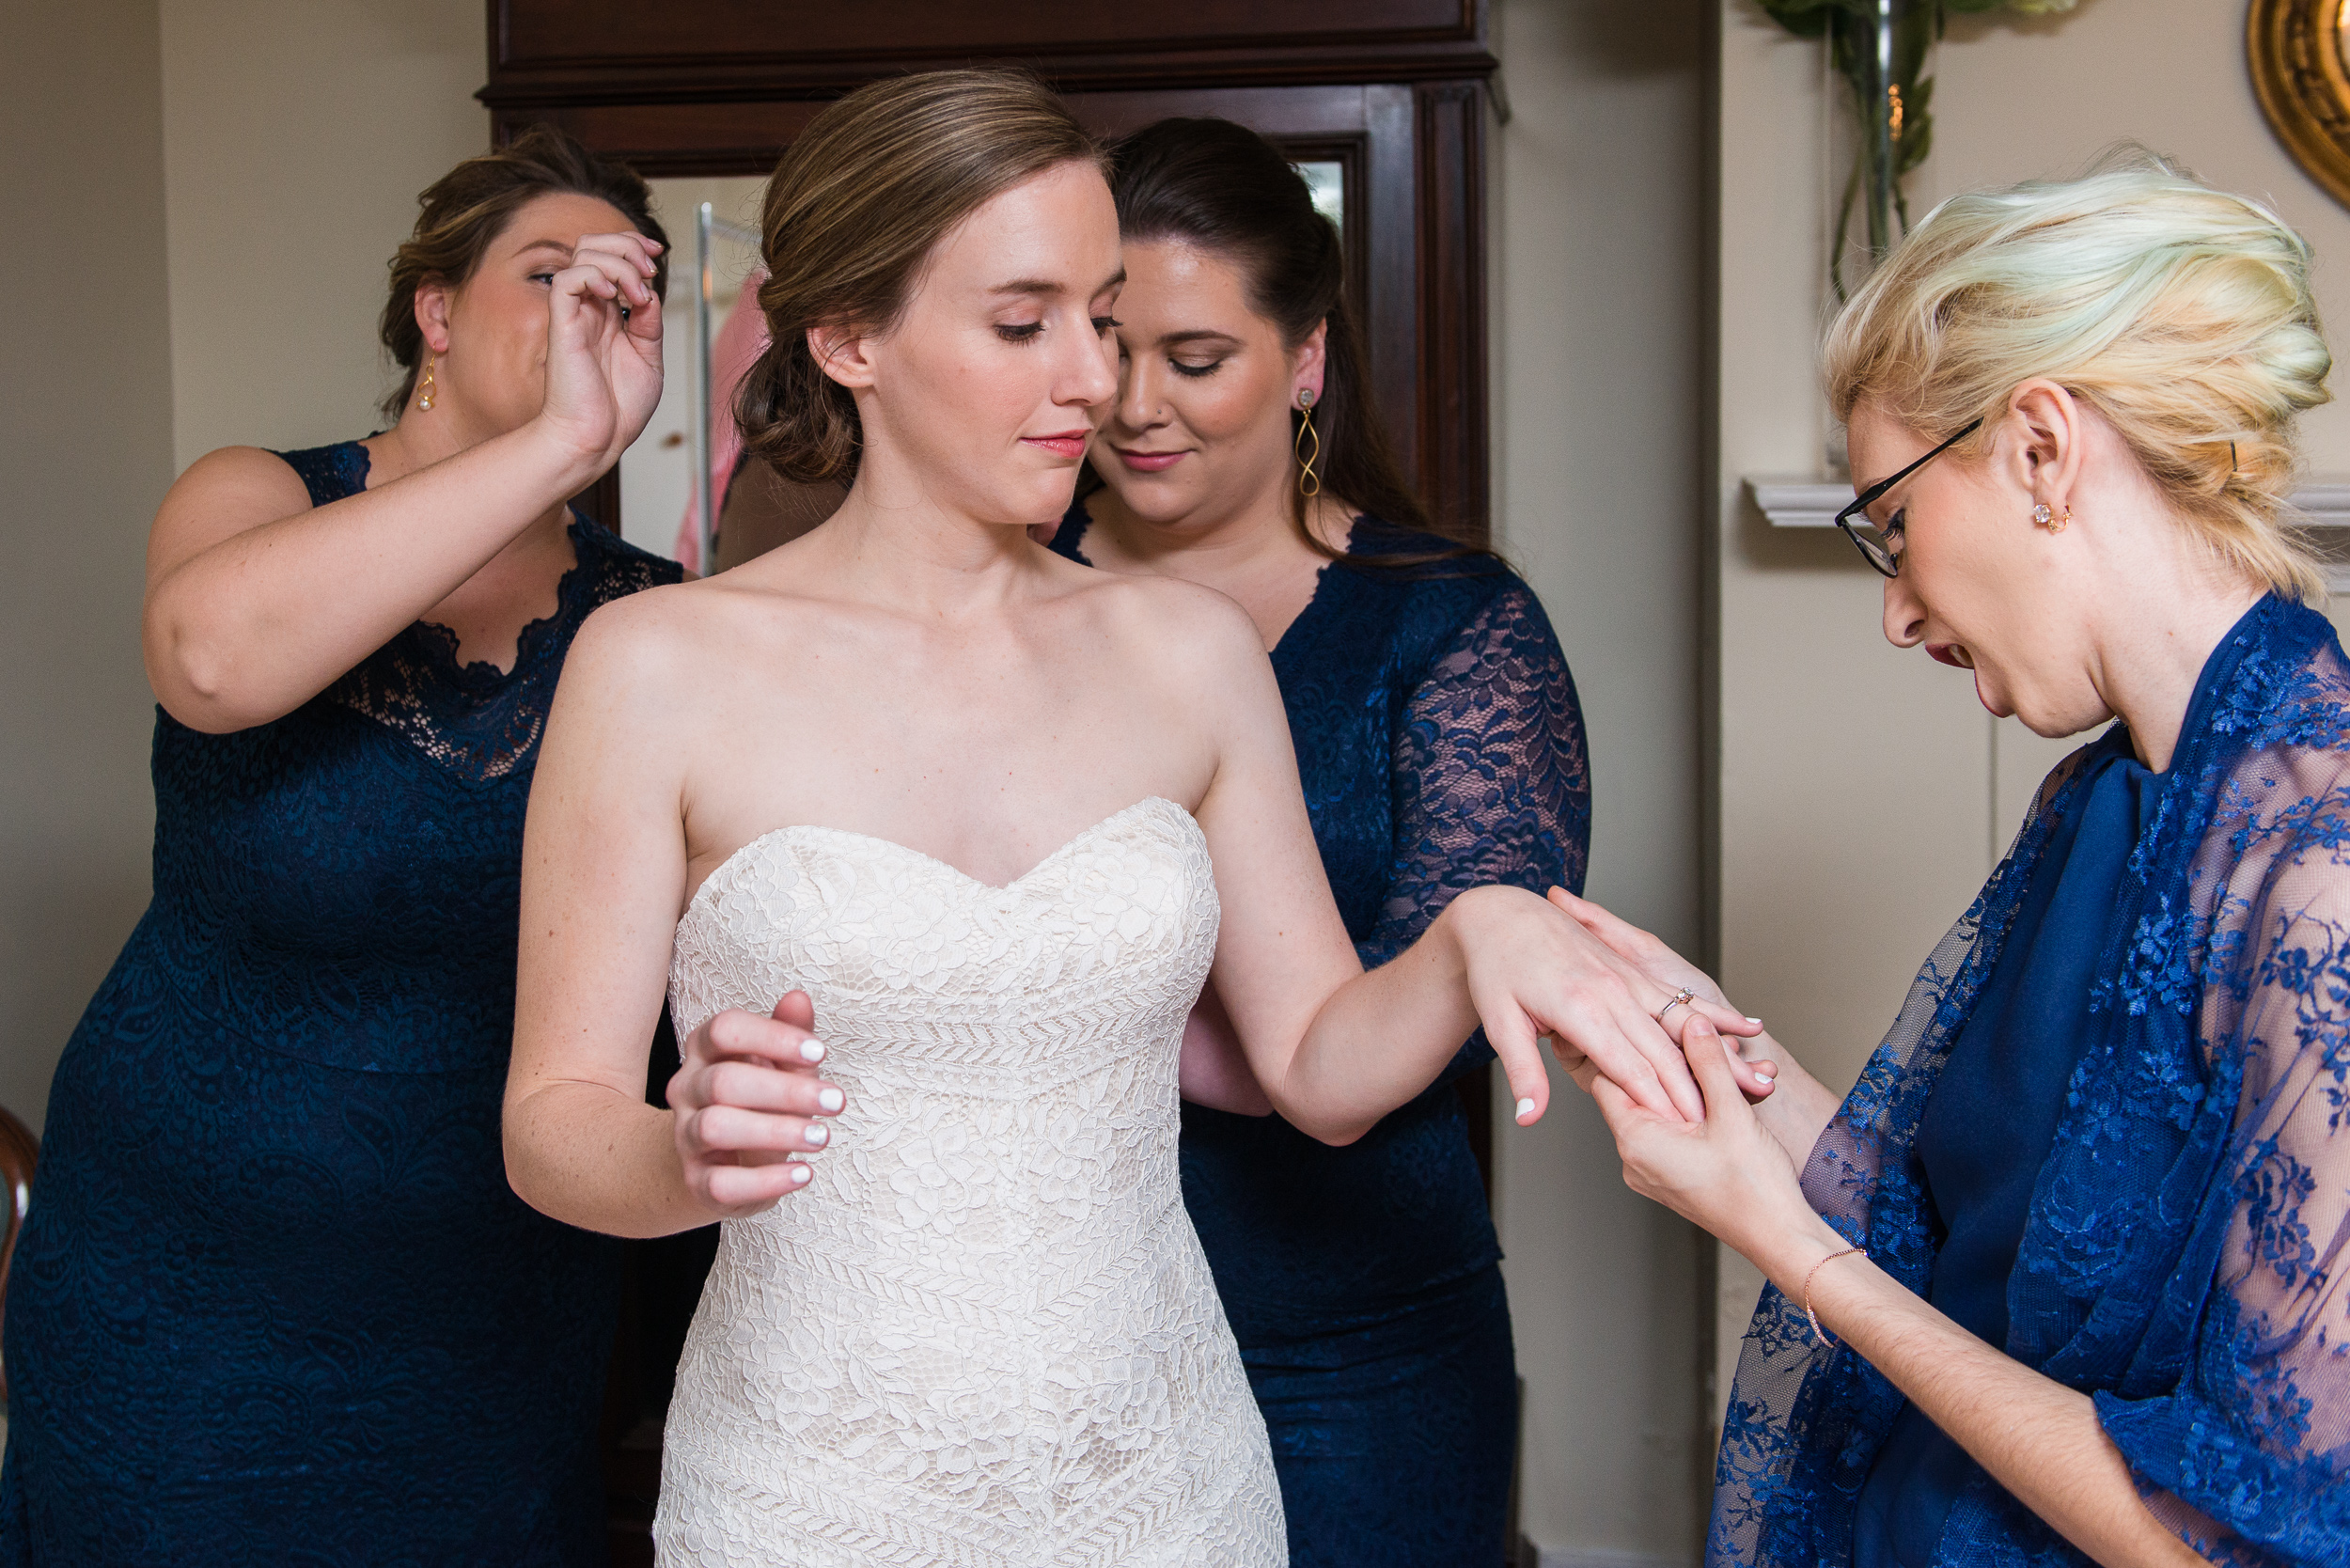 A bride getting ready with her bridesmaids before her wedding at Oatlands Historic House and Gardens in Leesburg, Virginia